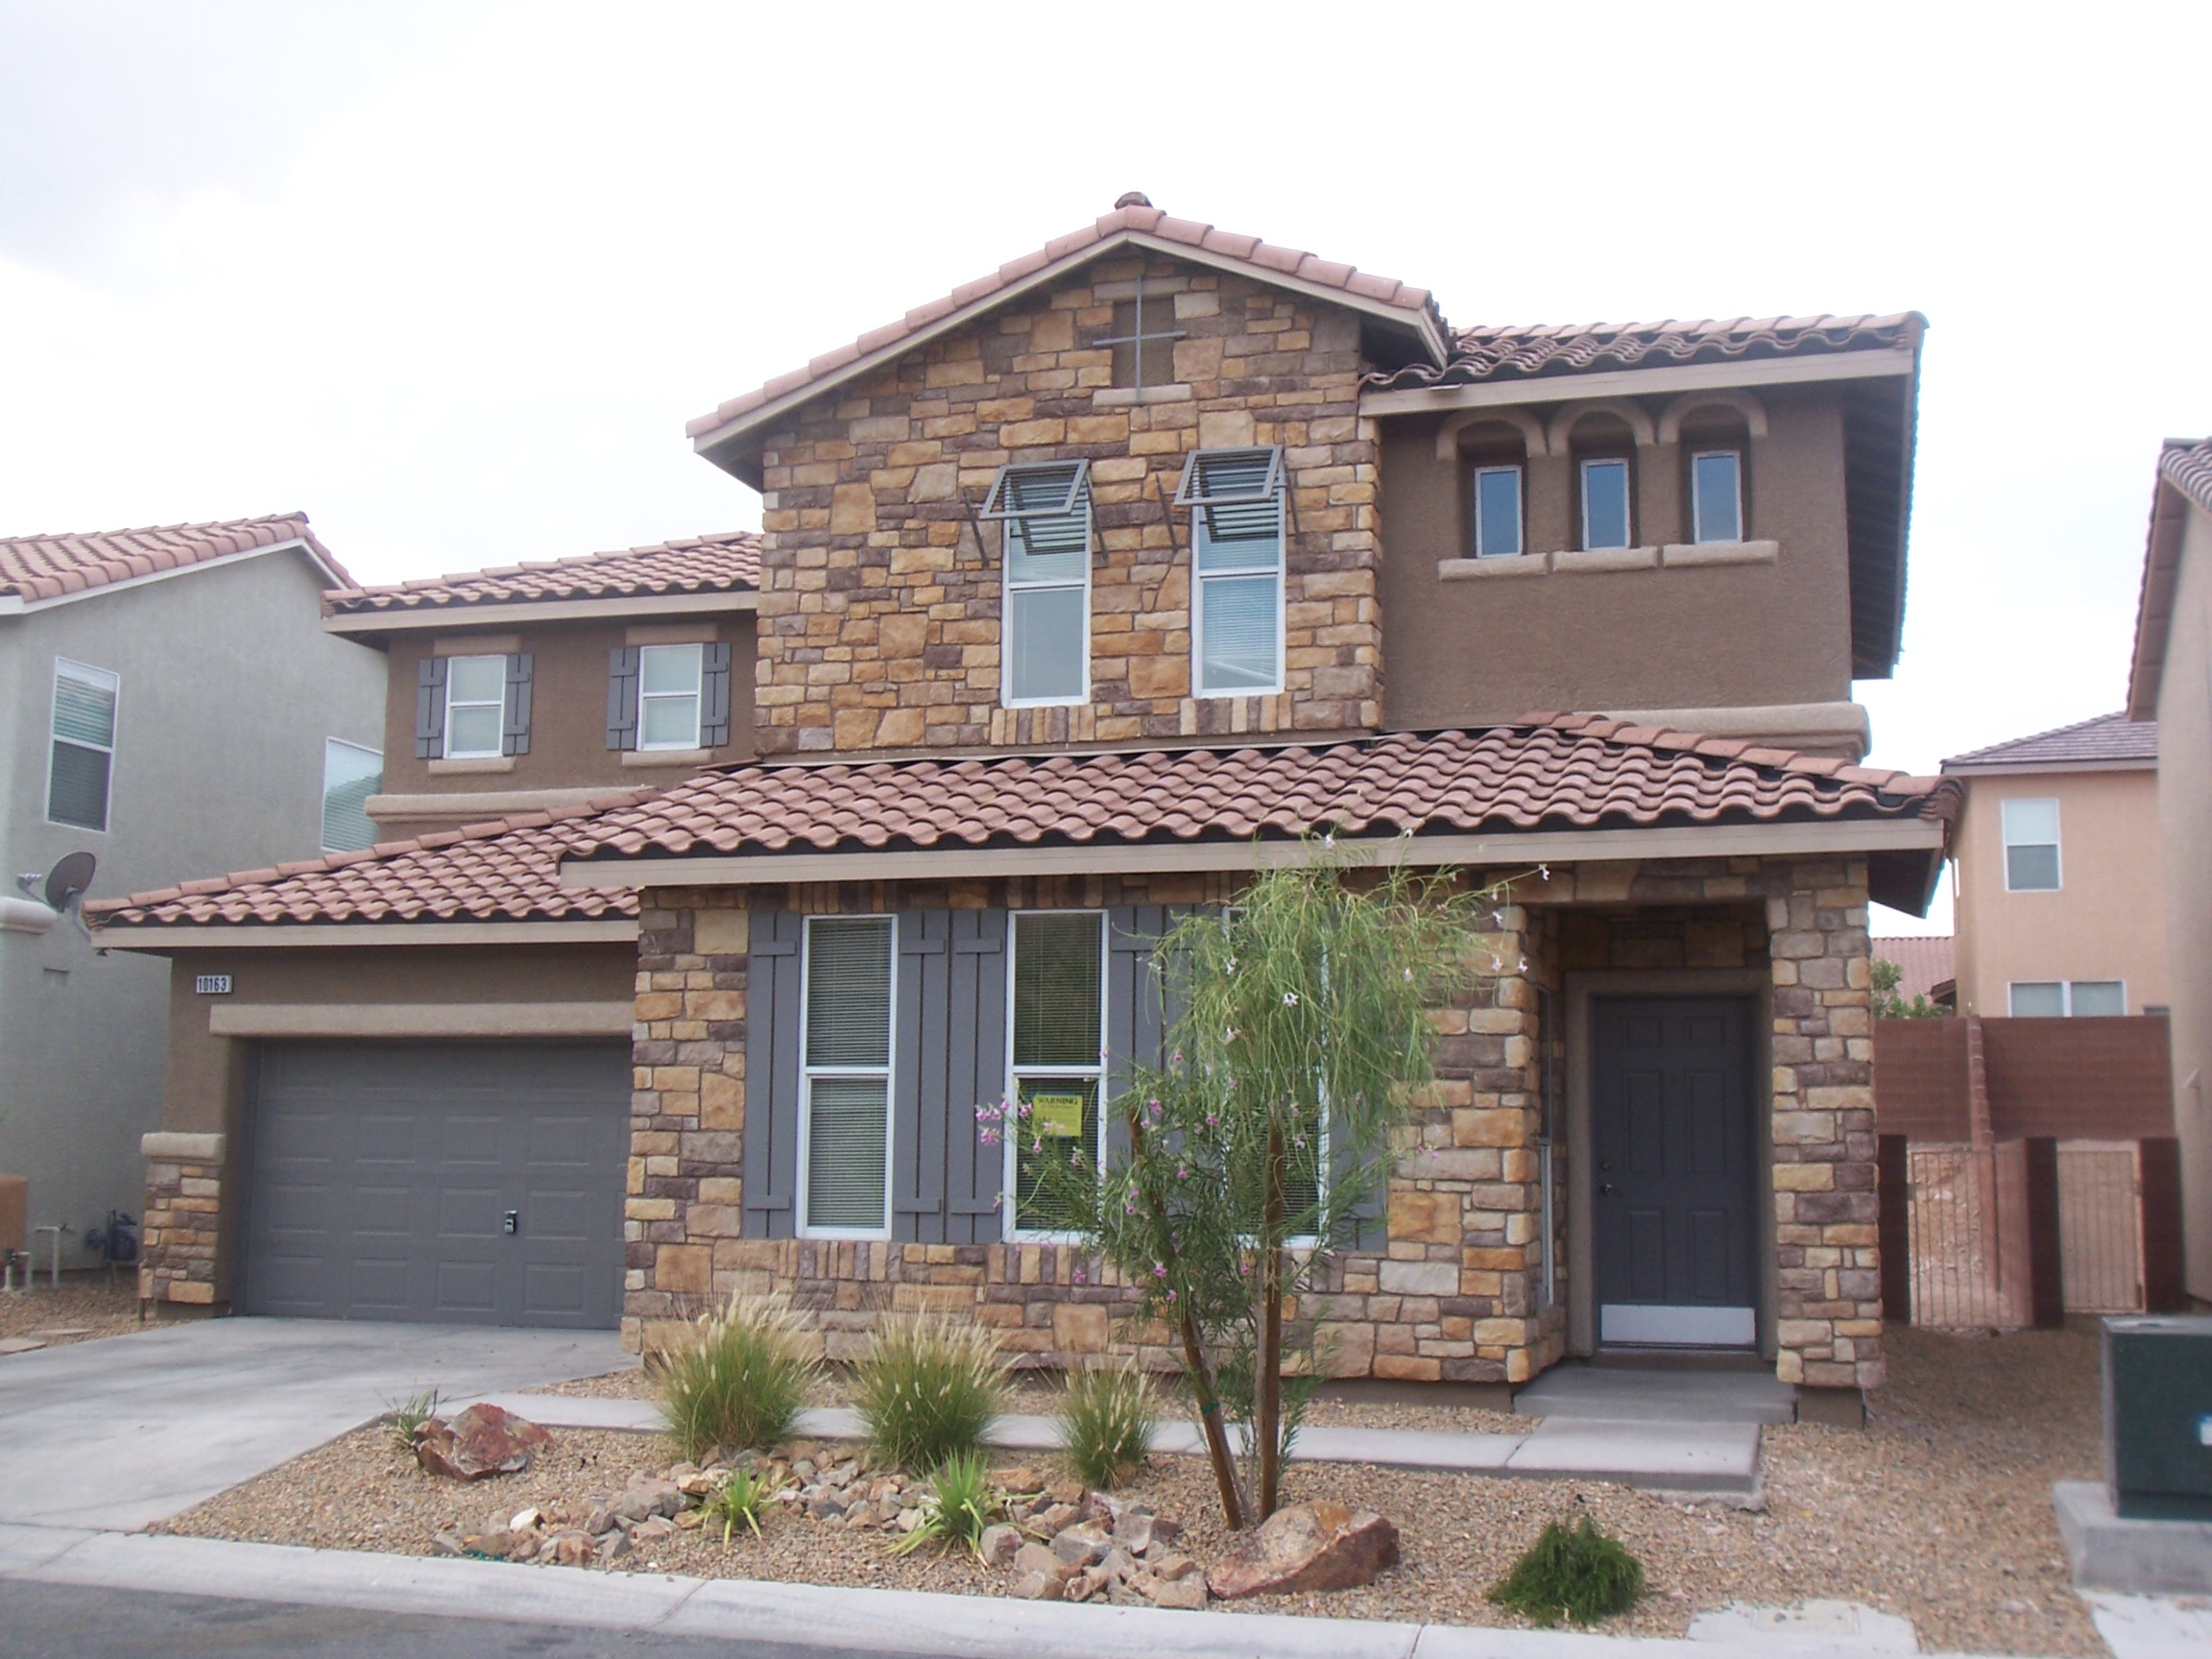 5 tips for buying homes in las vegas - Fachada de piedra ...